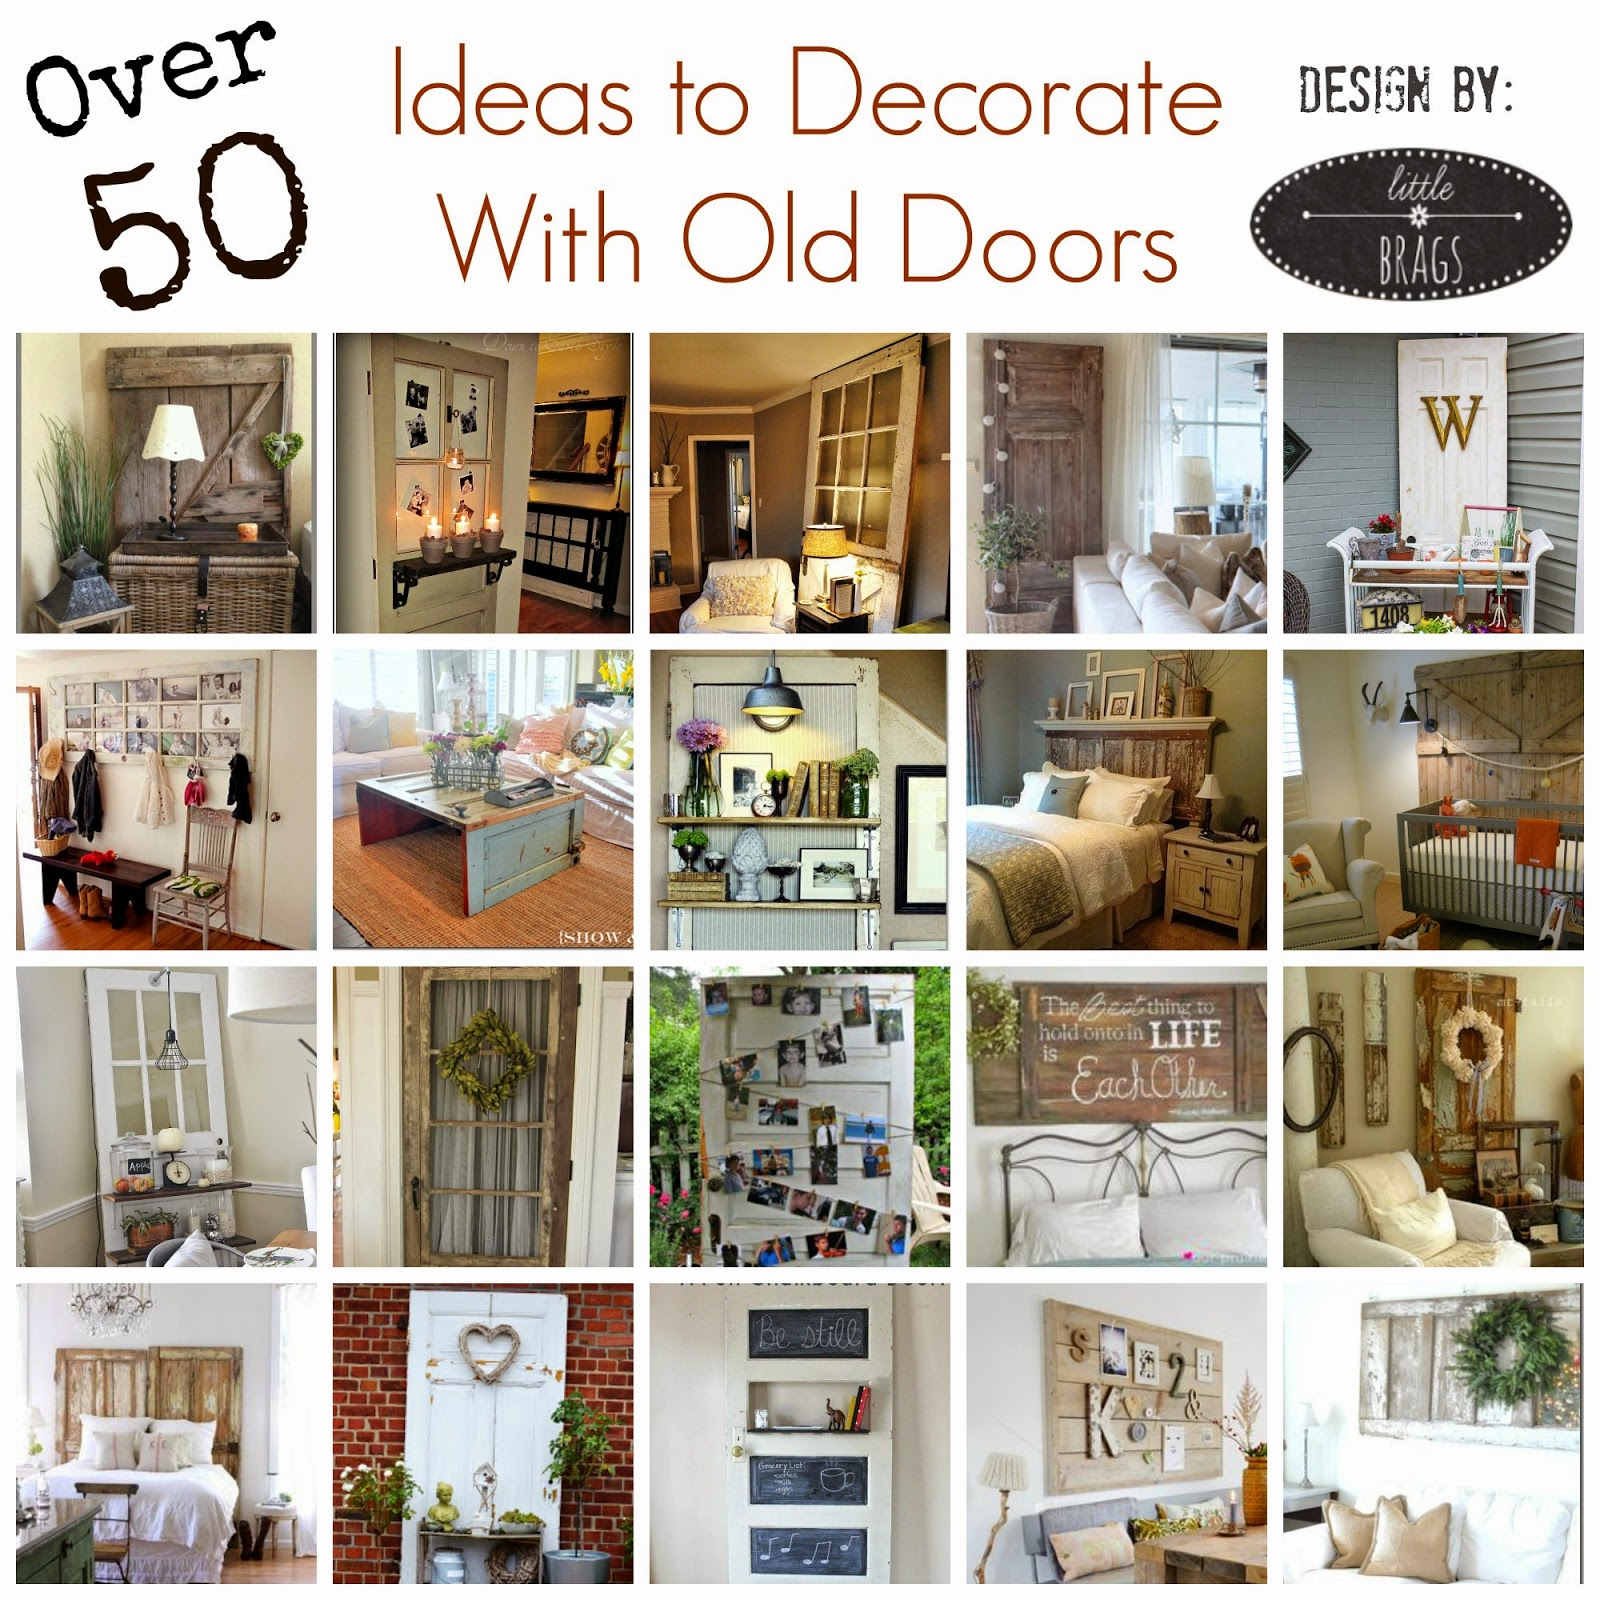 Little gs: Decorating With Old Doors on house facade design ideas, house entry design ideas, house courtyard design ideas, house wall design ideas, house entrance design ideas, house exterior design ideas, house fence design ideas, house room design ideas, house deck design ideas, house siding design ideas, house floor design ideas,